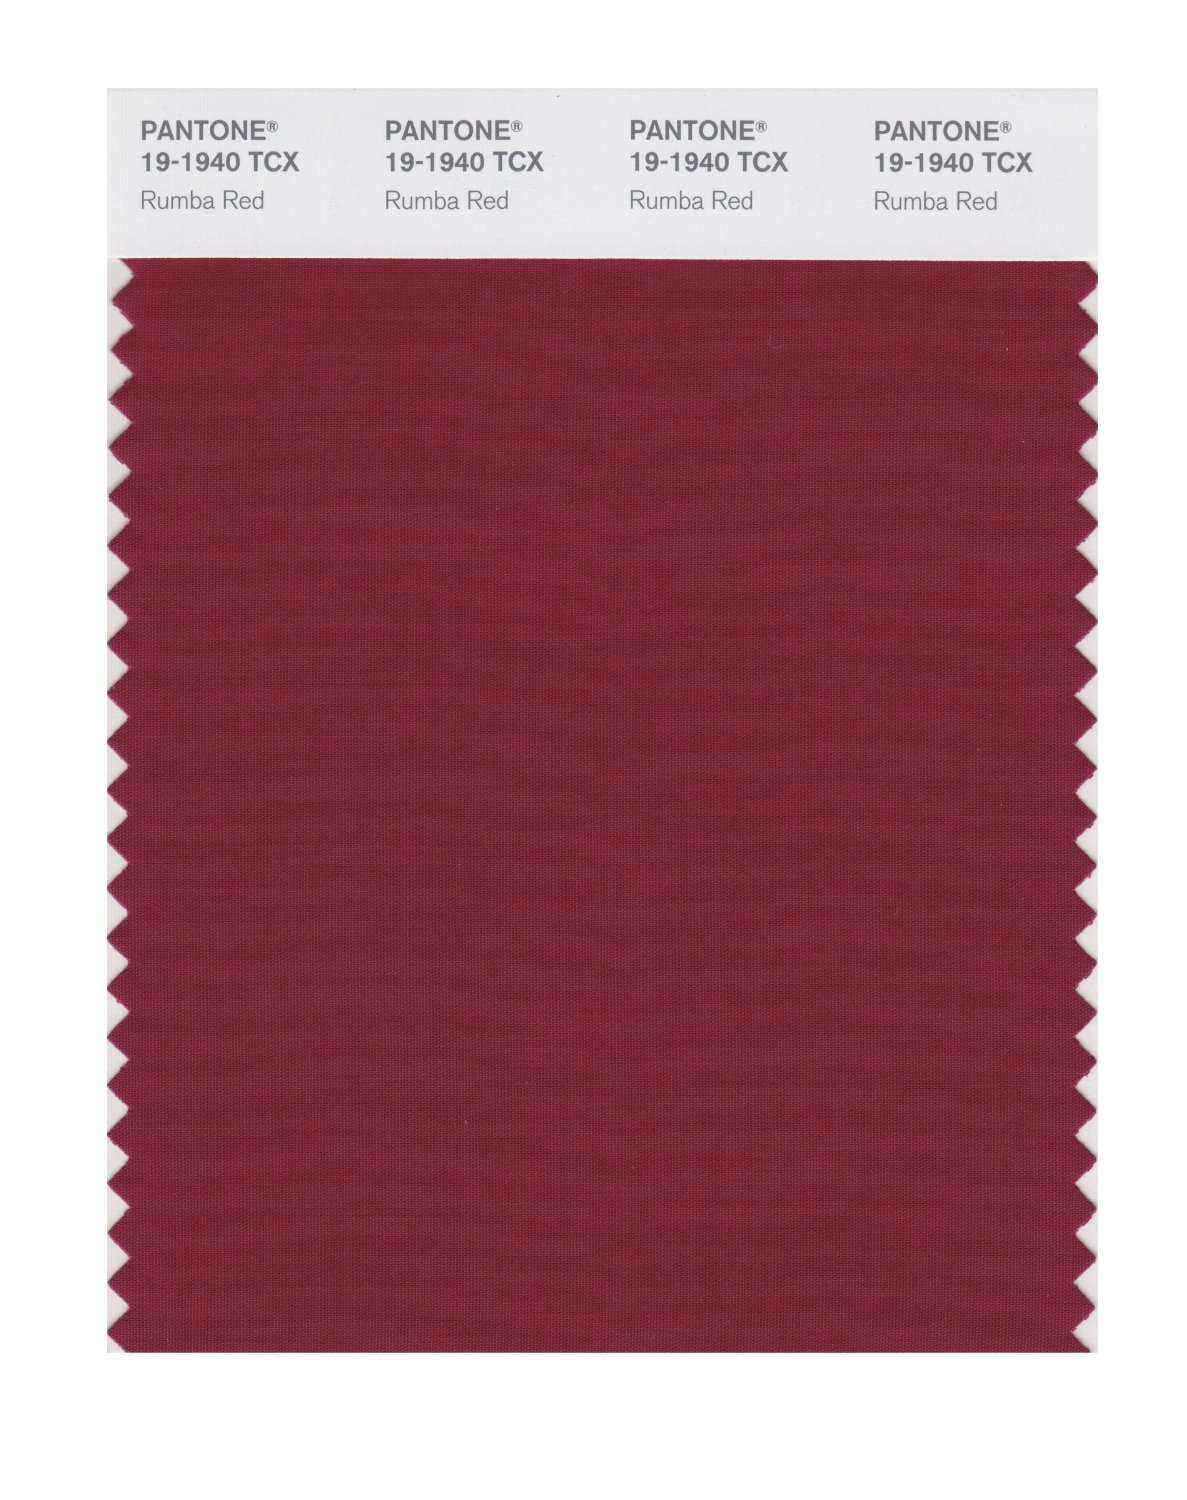 Pantone Smart Swatch 19-1940 Rumba Red